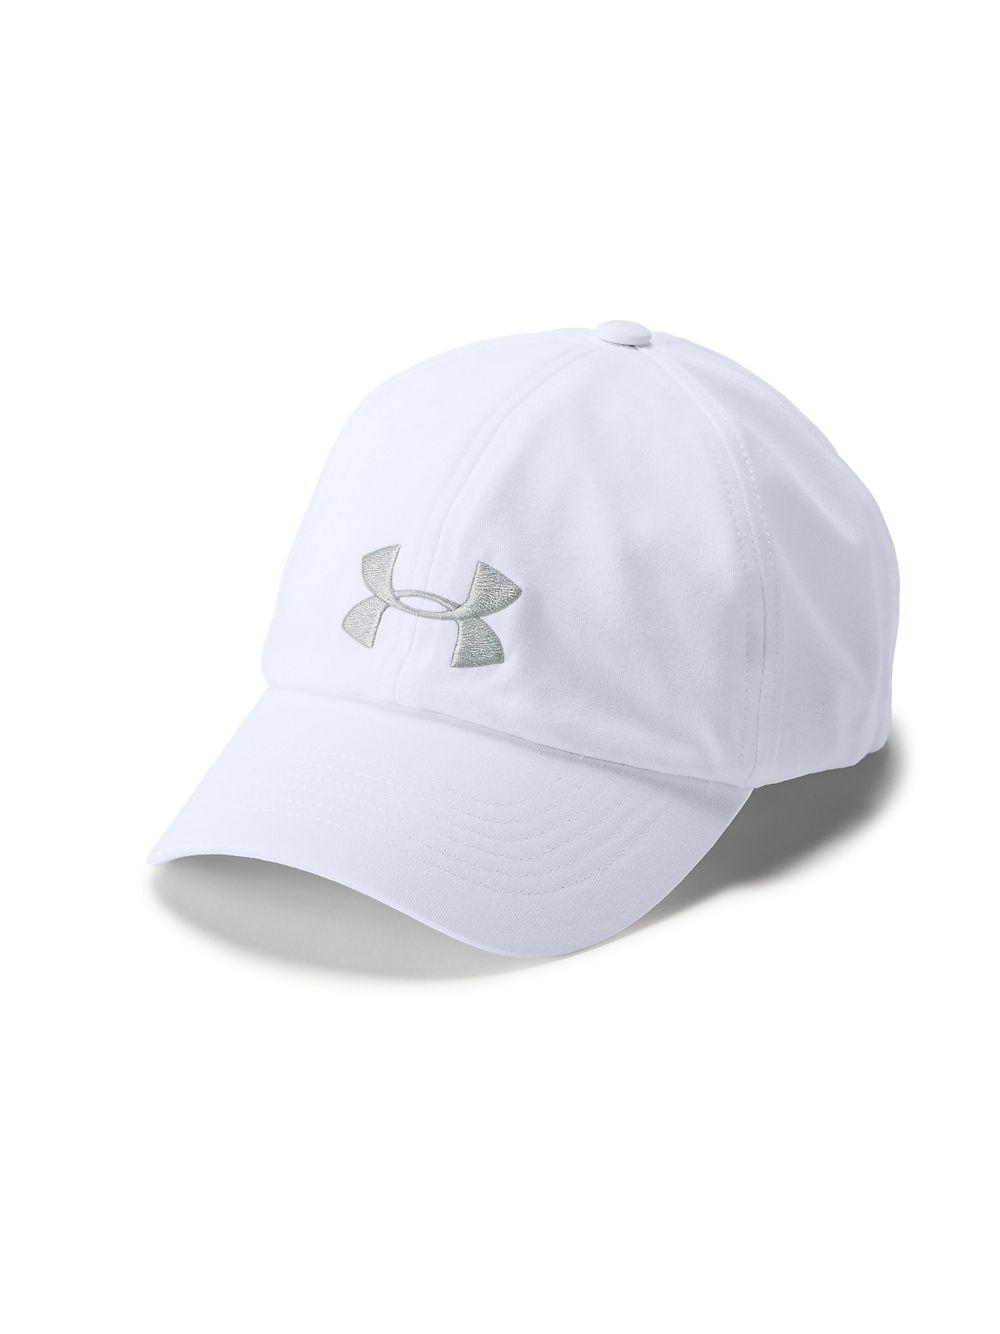 4ed7b804038 Under Armour Renegade Hat in White - Lyst